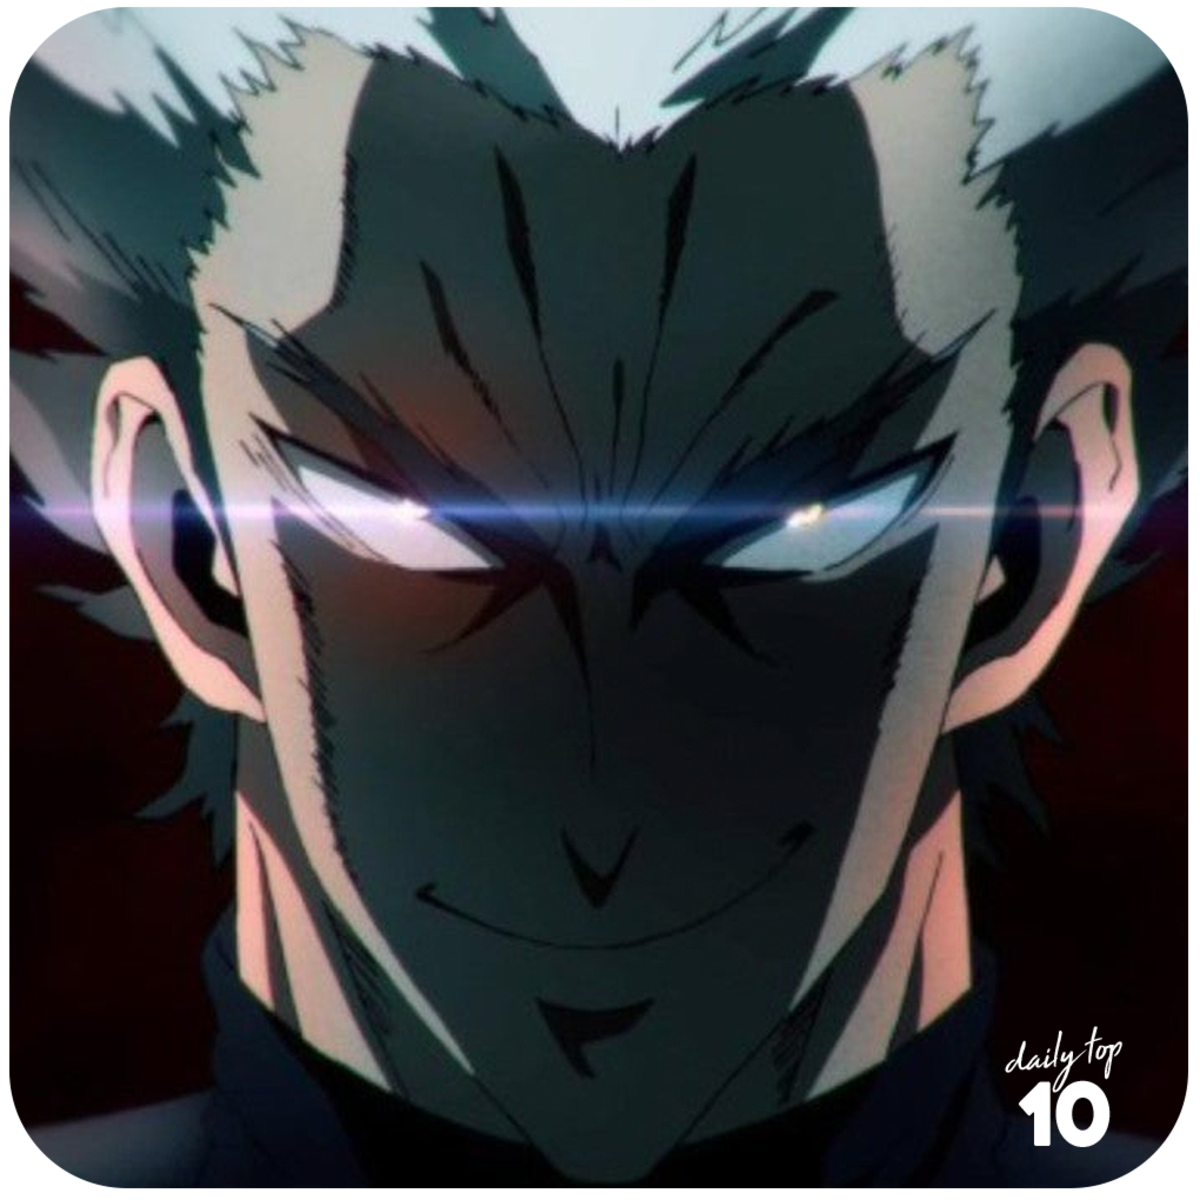 Garou with gleaming eyes